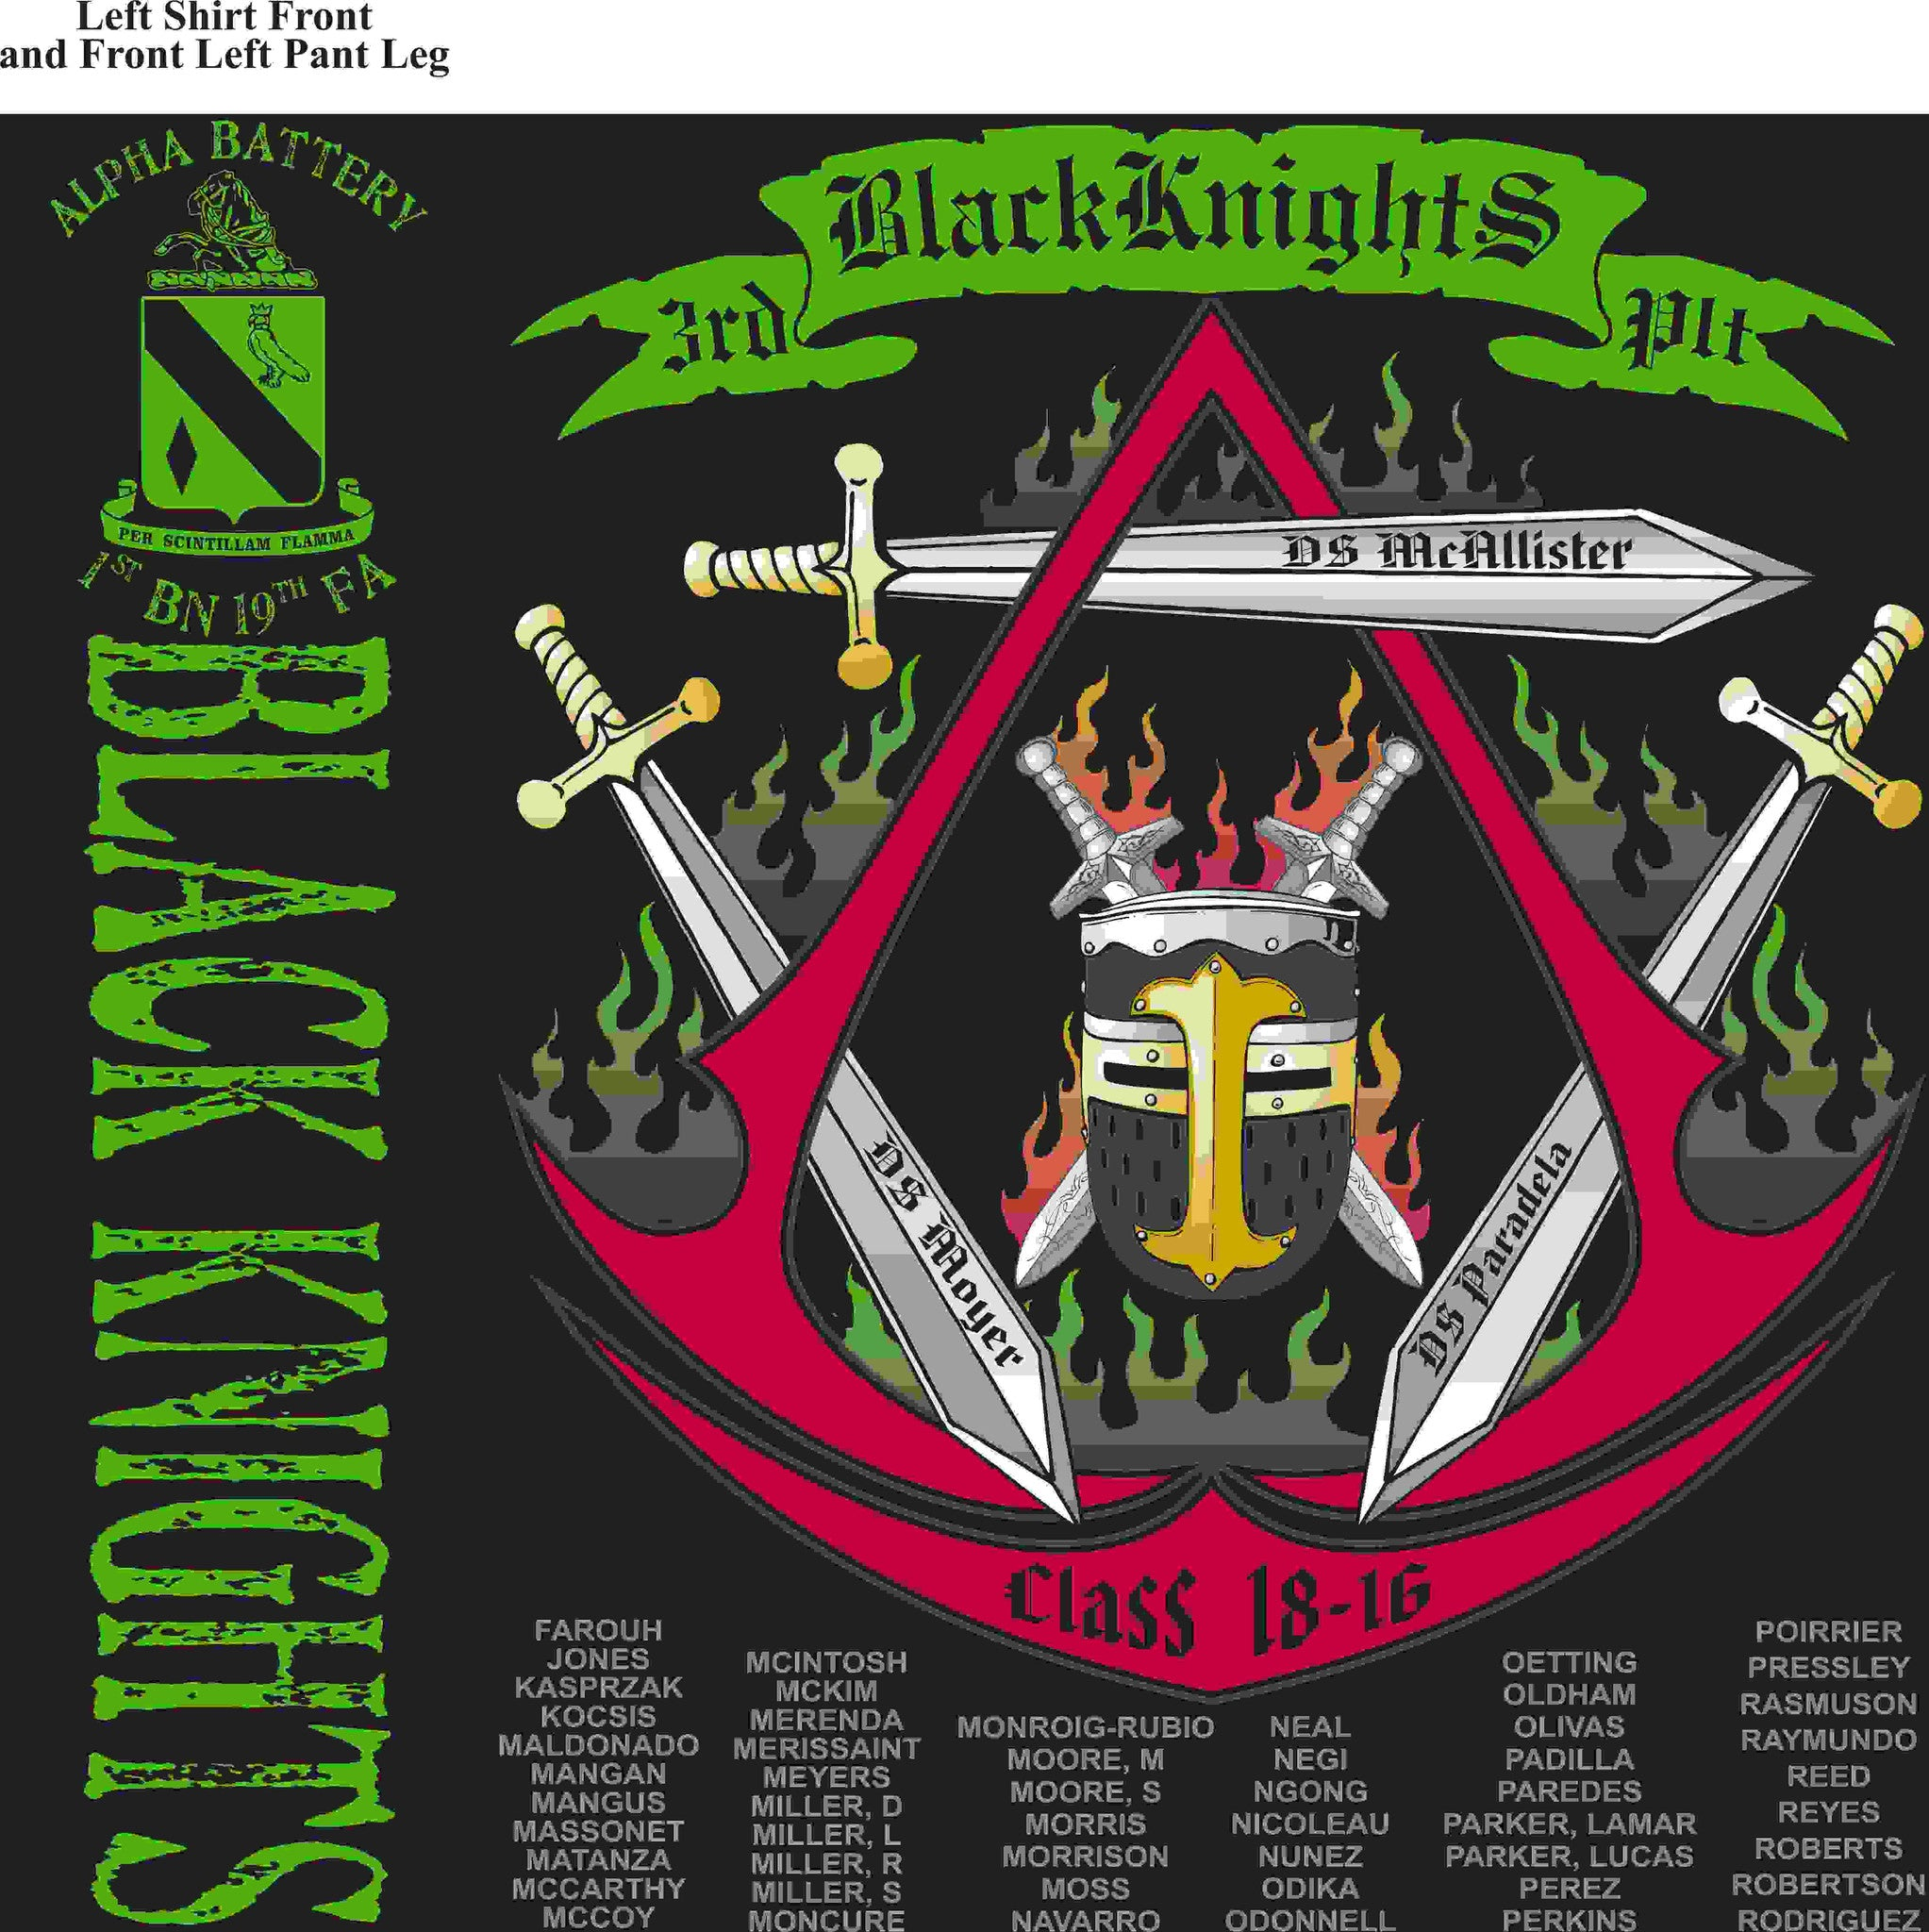 PLATOON SHIRTS (2nd generation print) ALPHA 1st 19th BLACK KNIGHTS MAR 2016